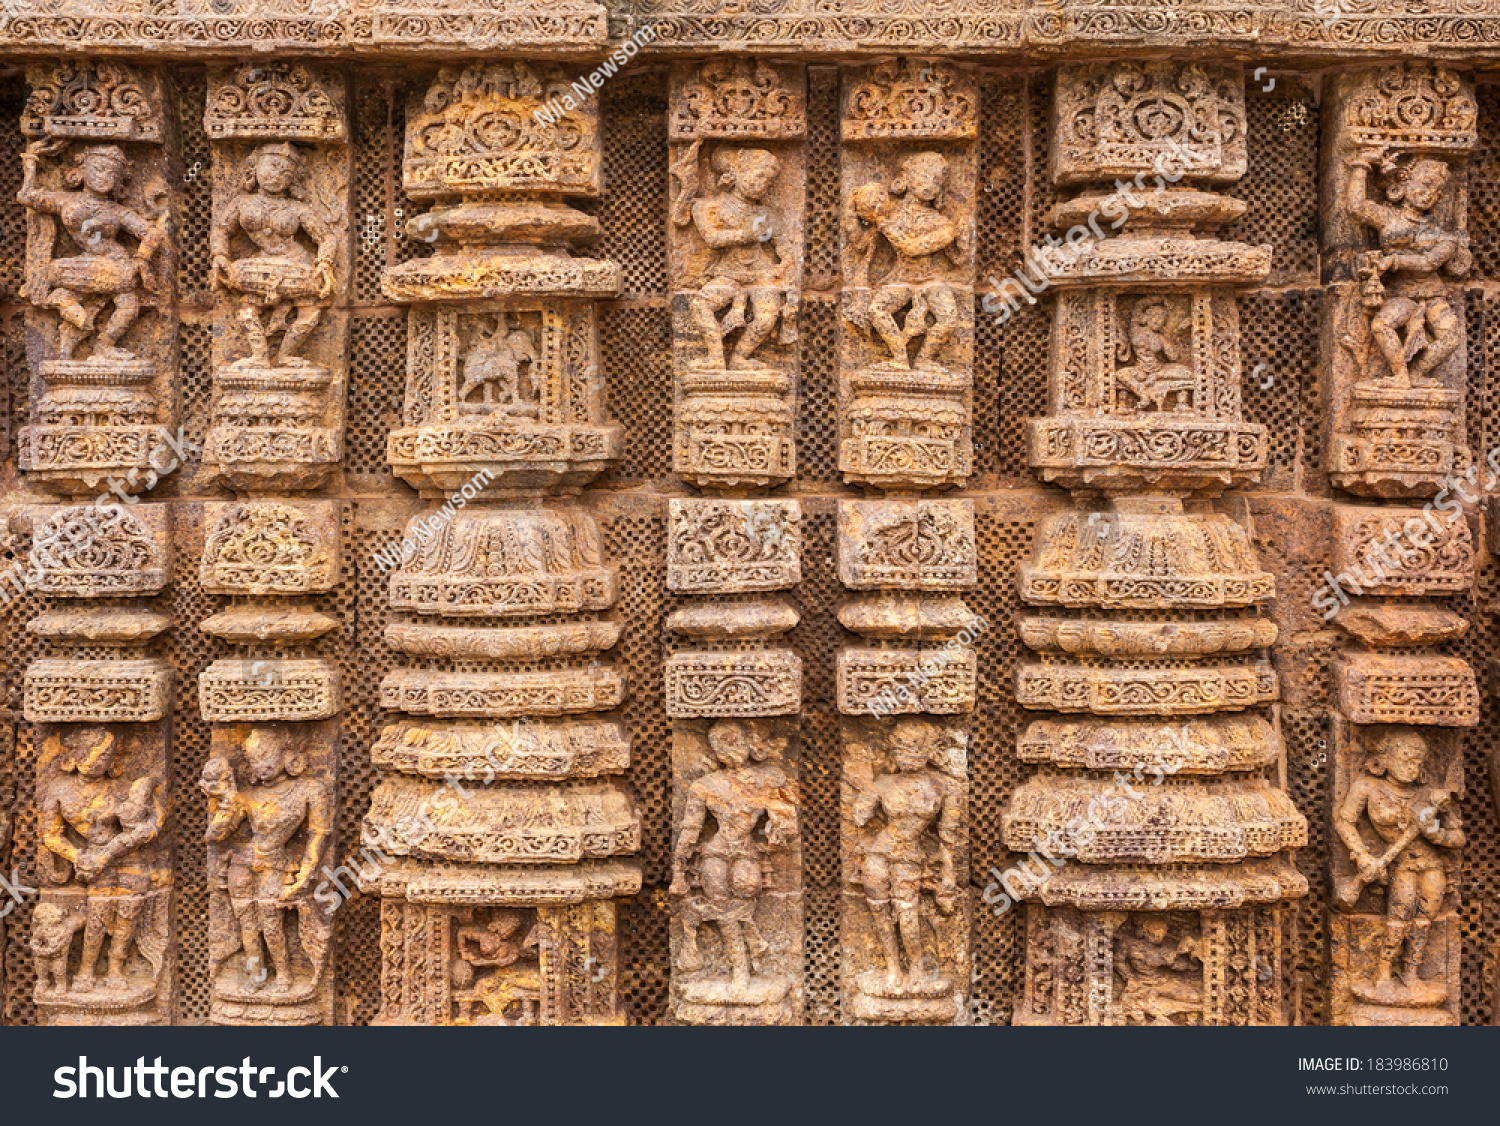 Ancient sandstone carvings on the walls of